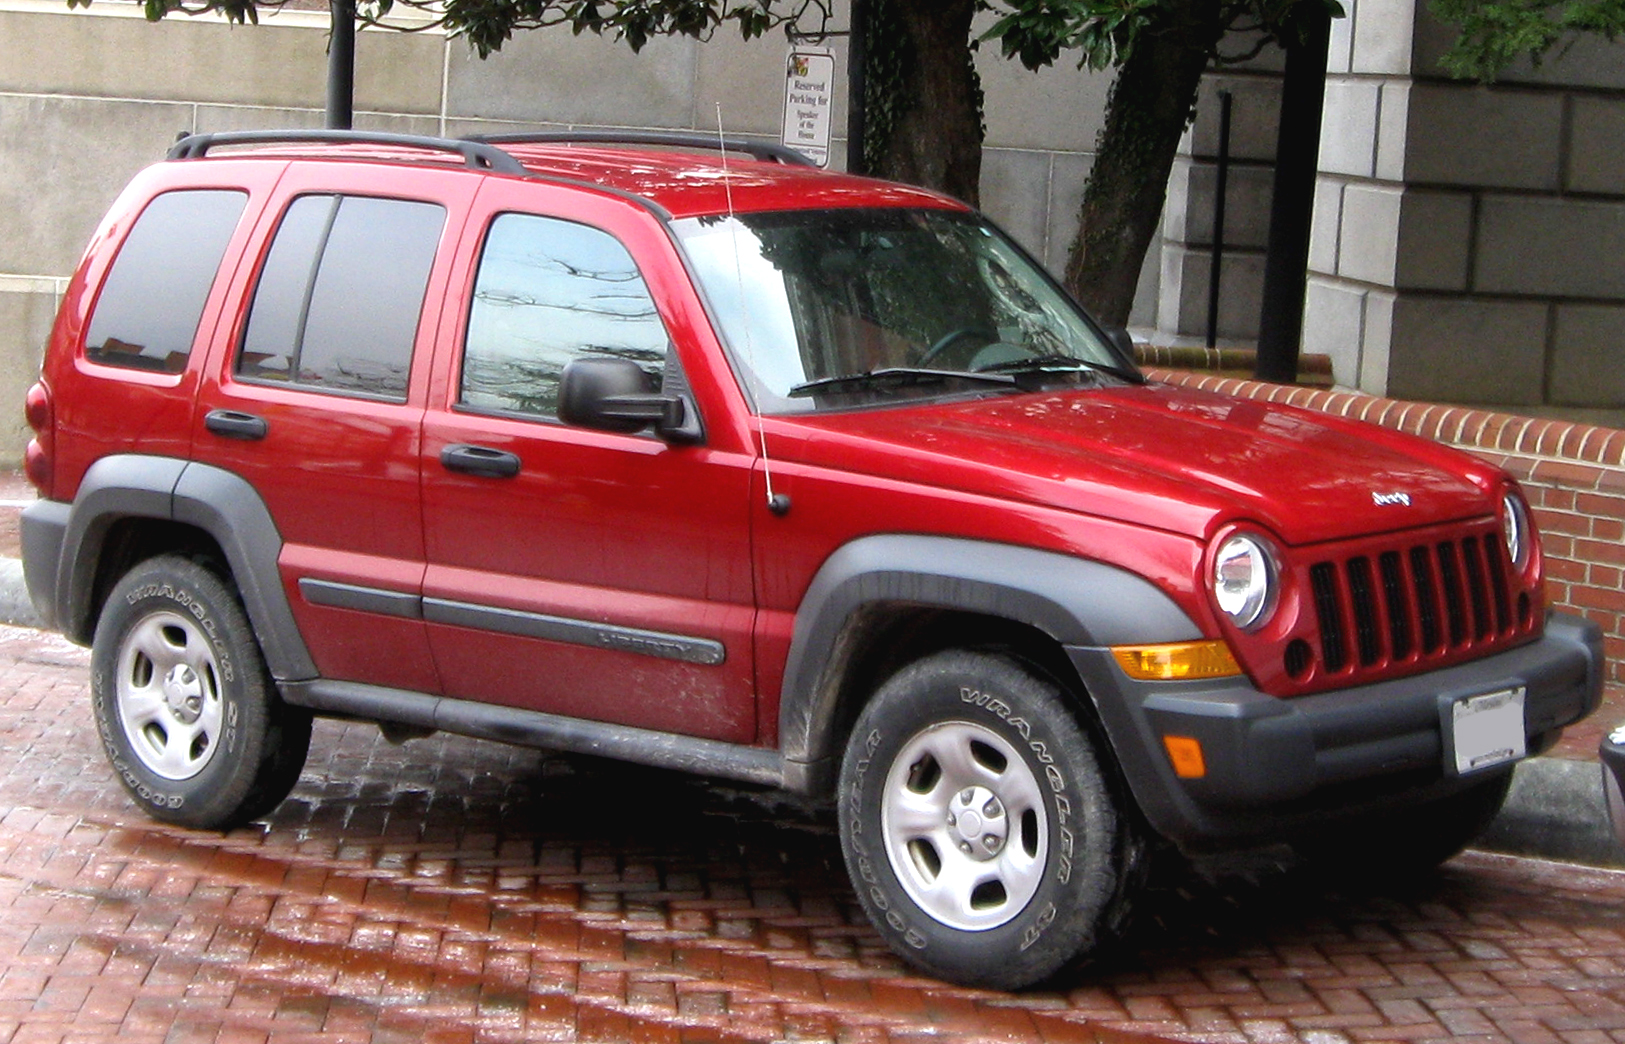 Superior 2005 Jeep Liberty #11